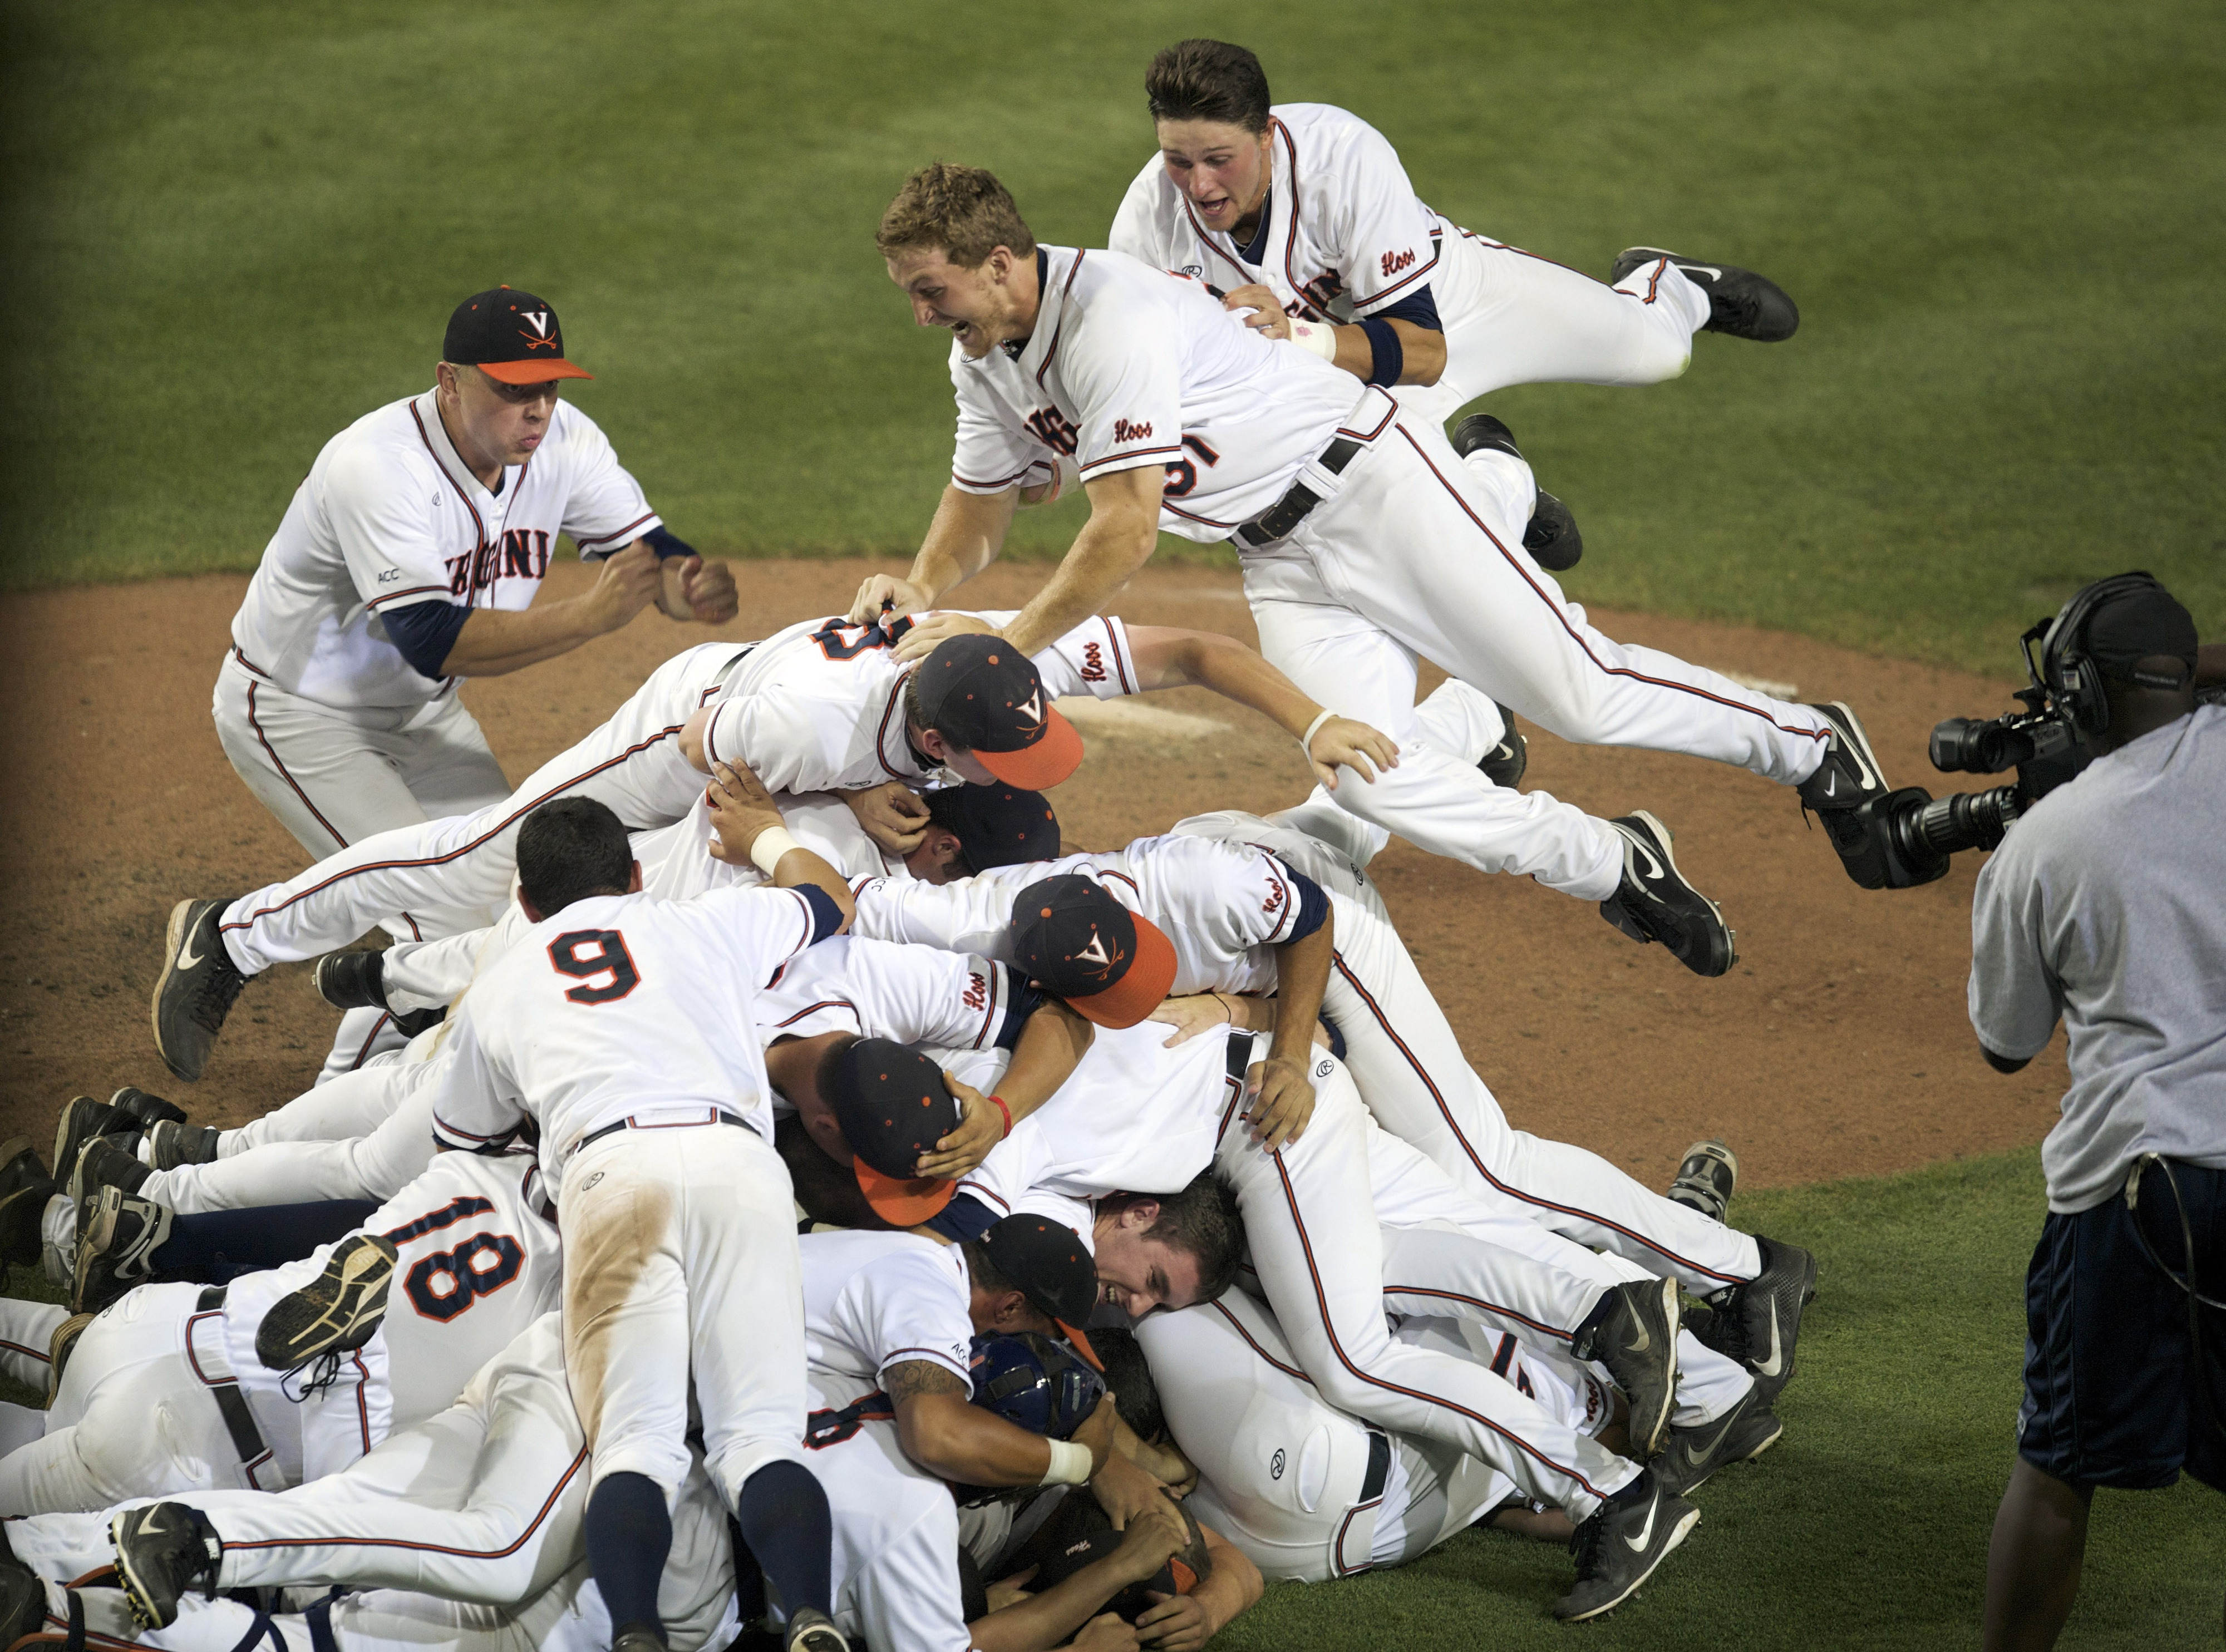 Dogpiling before winning it all? Interestng karmic strategy.